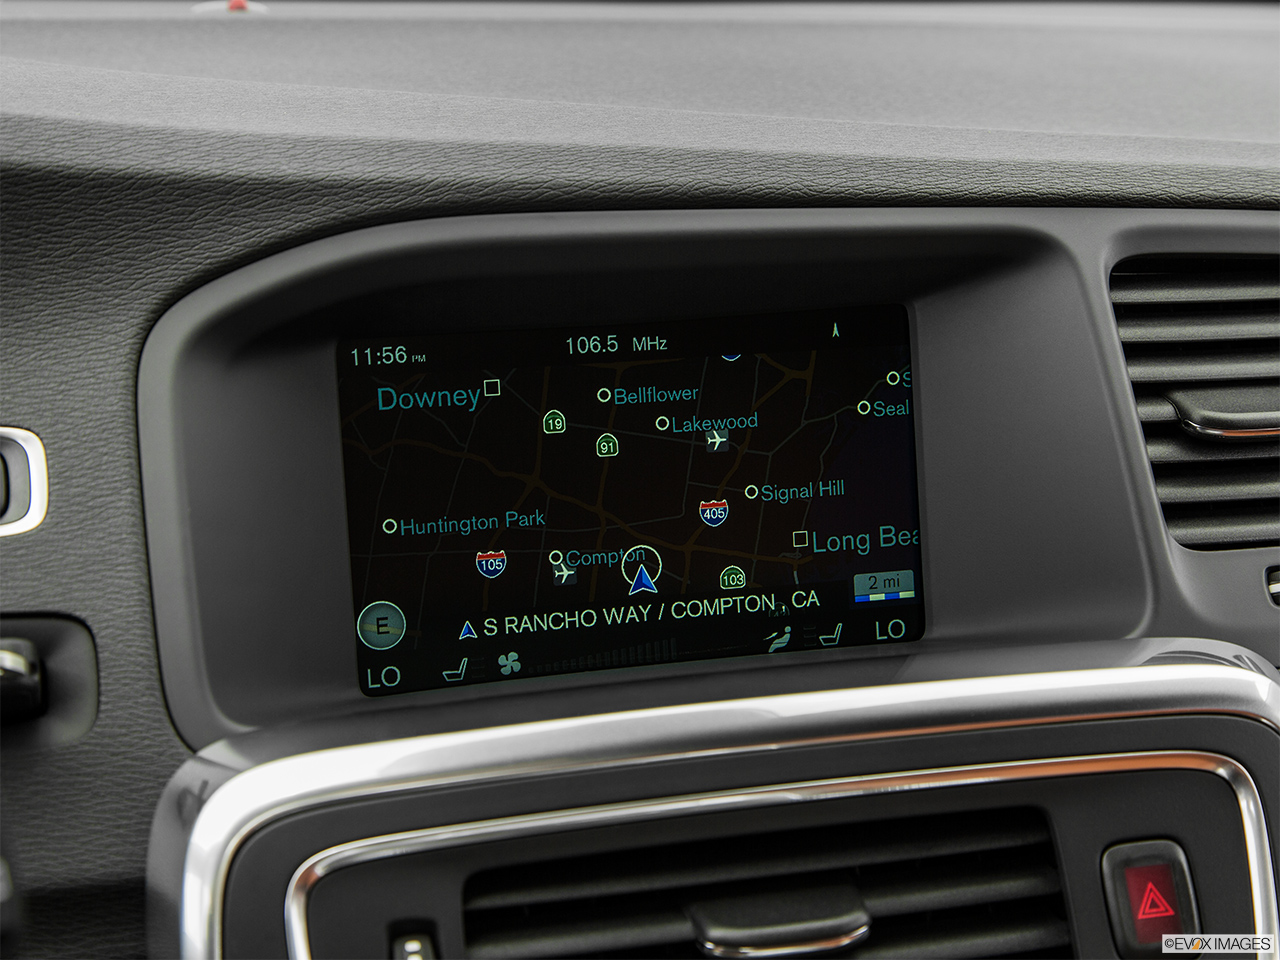 2015 Volvo V60 Cross Country T5 AWD Driver position view of navigation system.